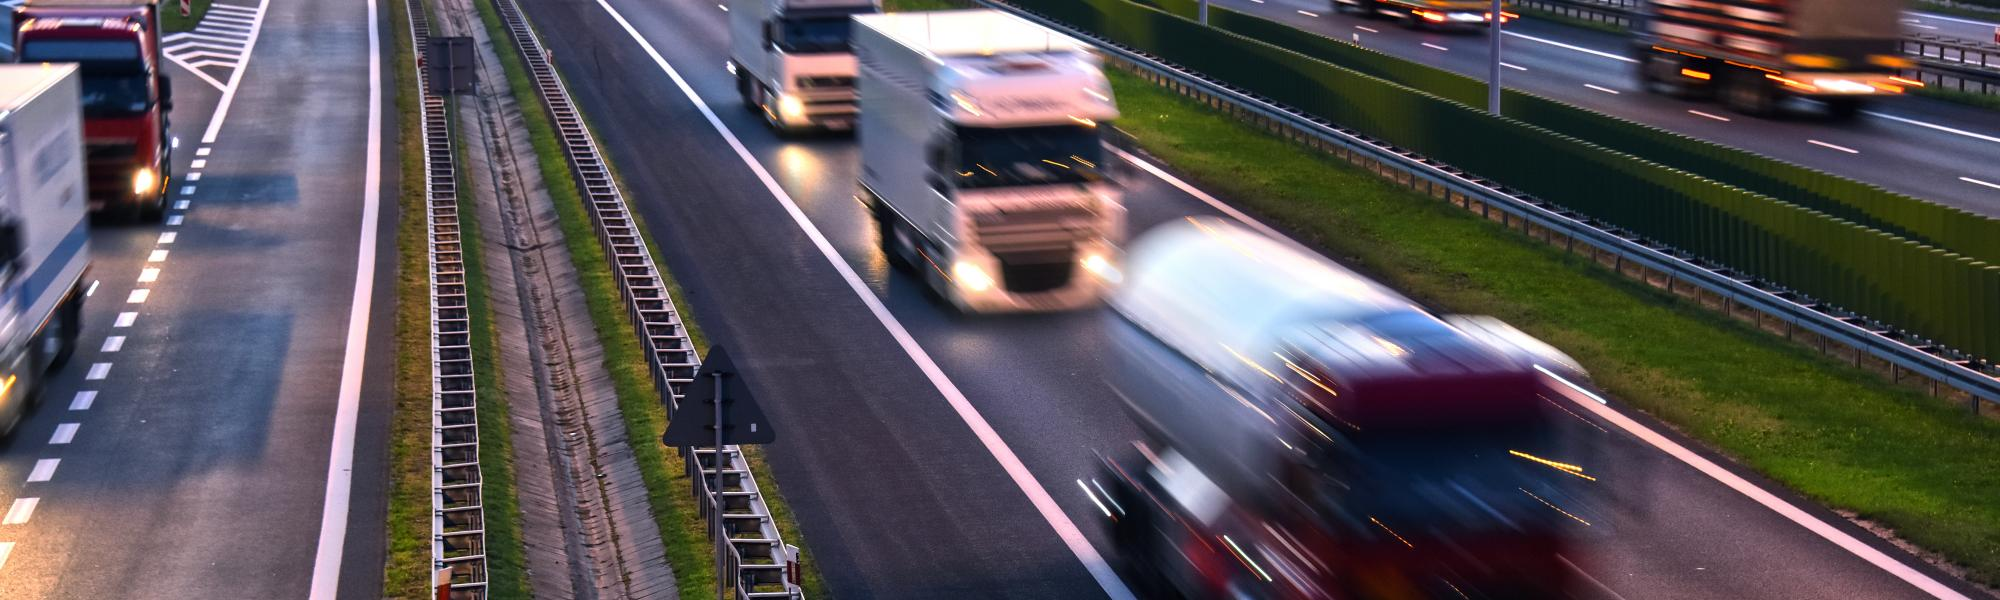 Enforcement of road transport rules must be a top priority for the EU after EU elections